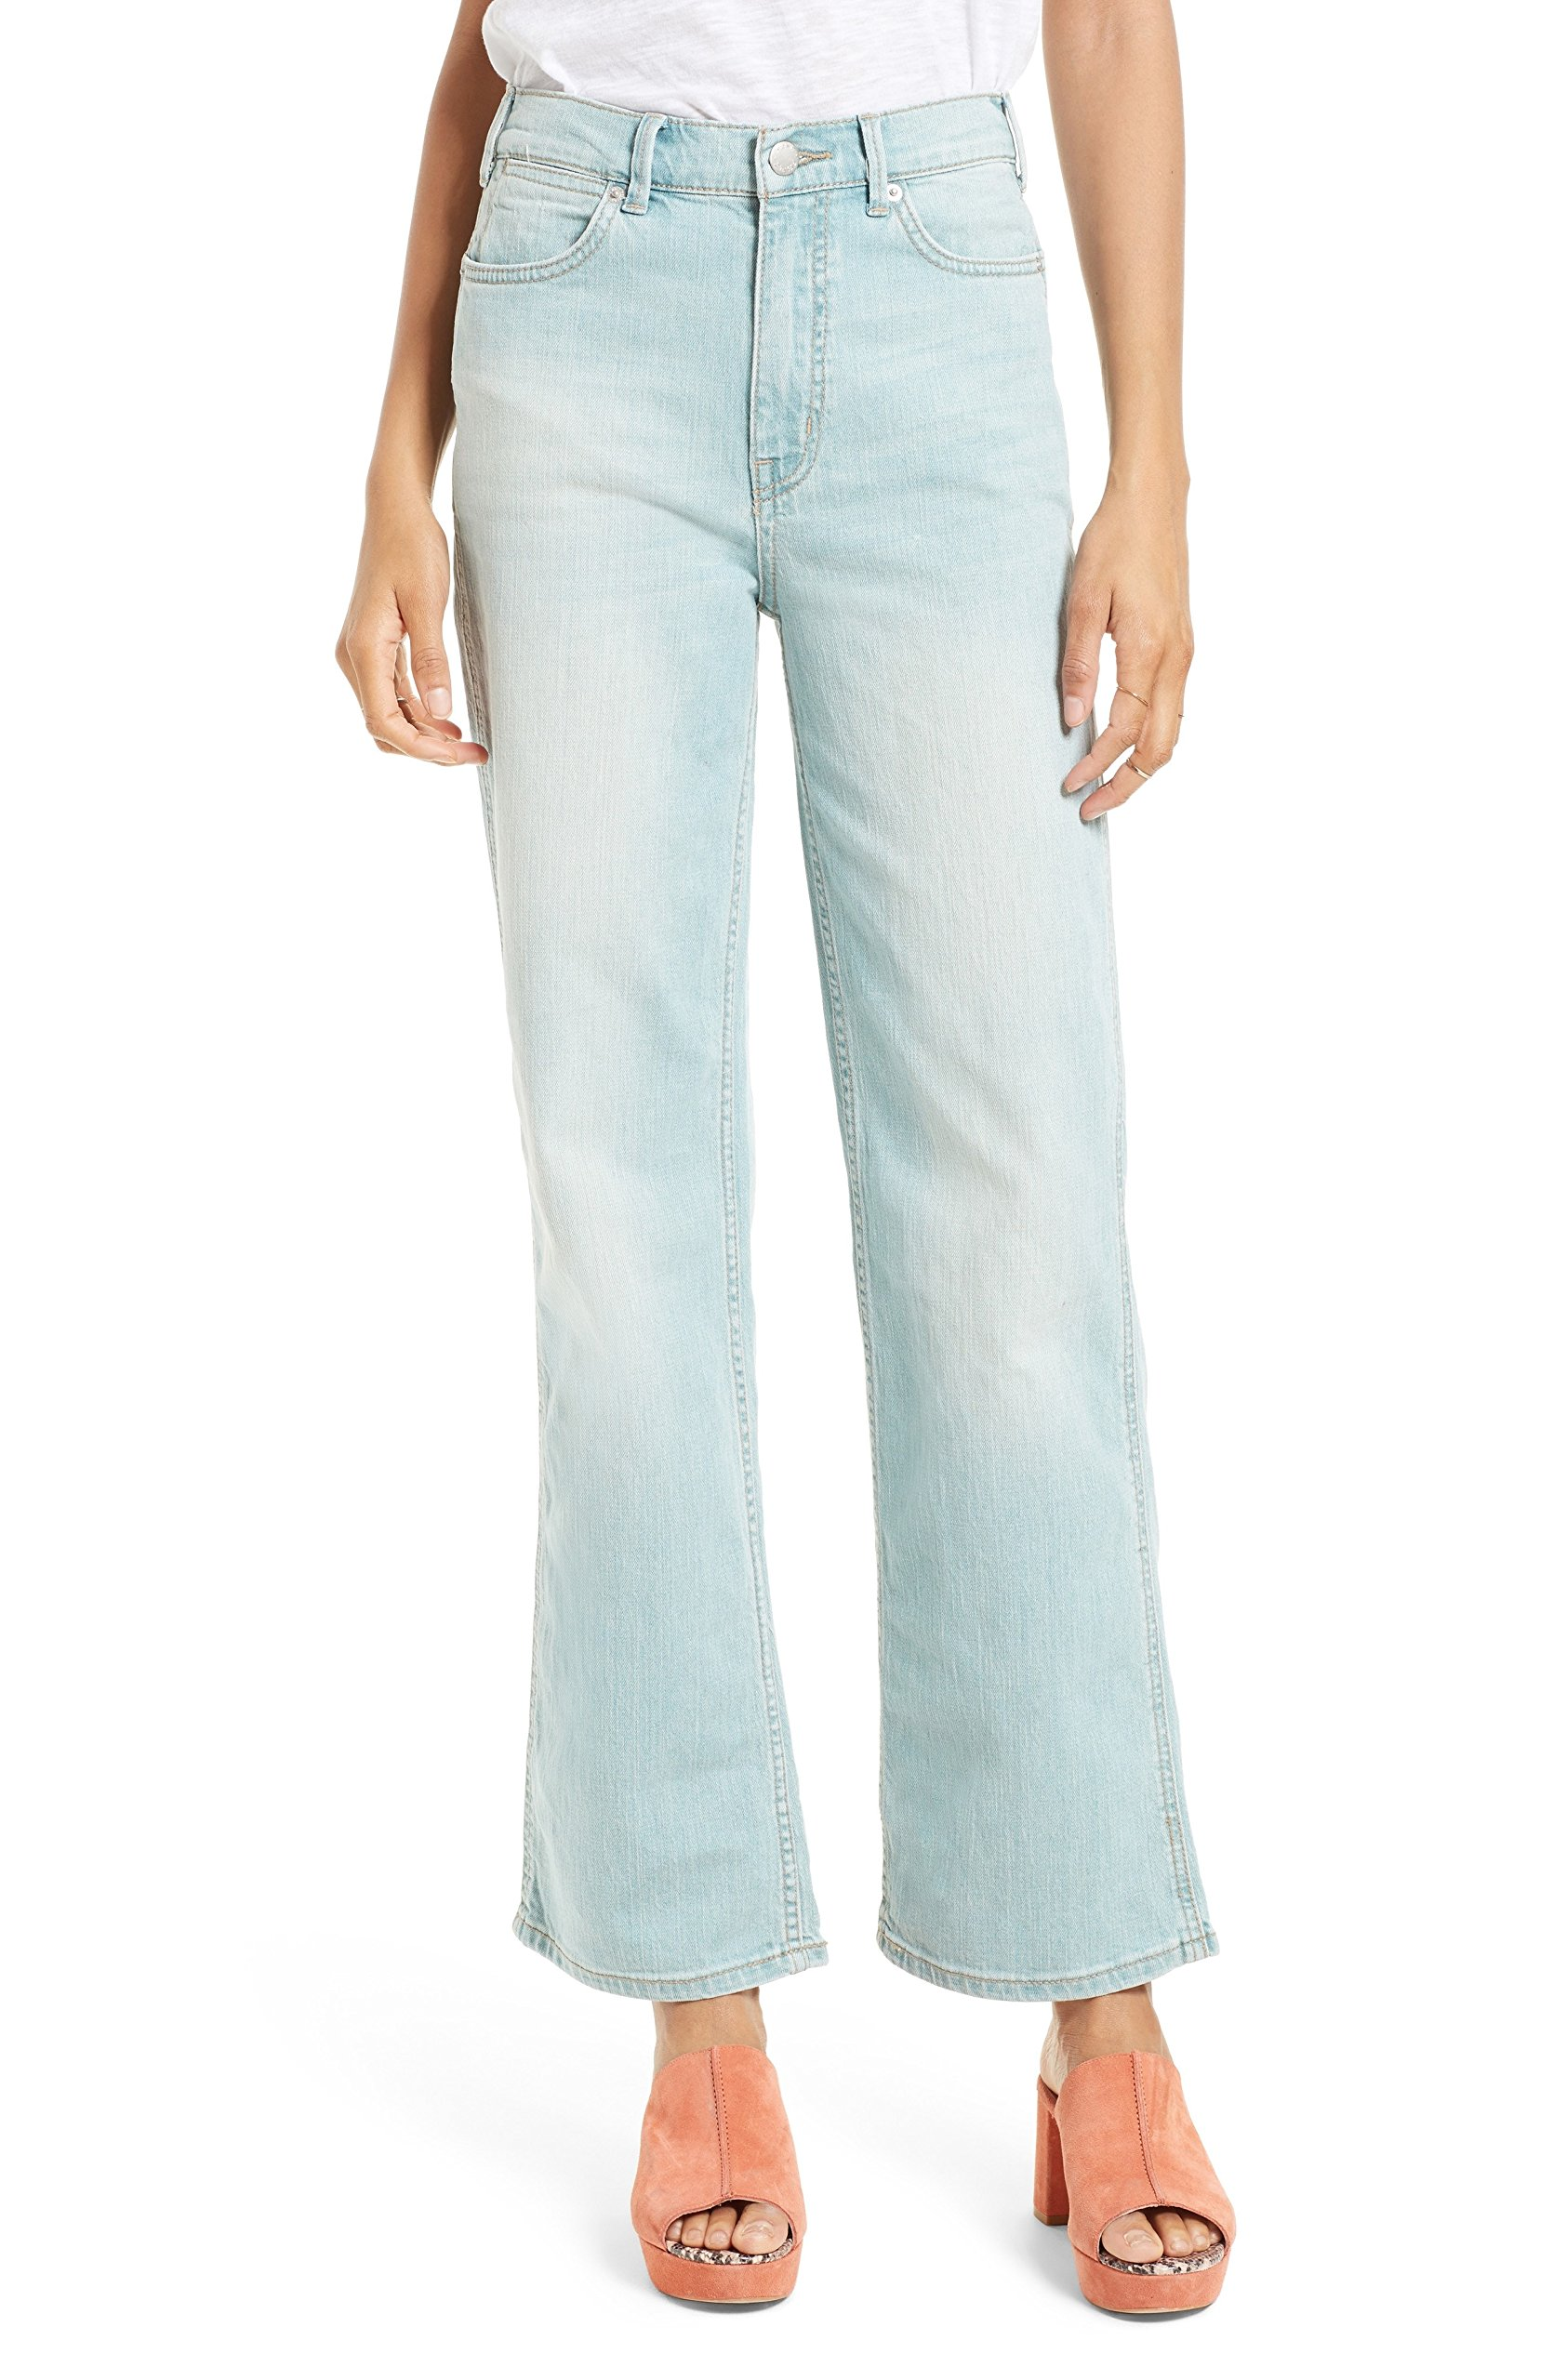 Free People Women's High Rise Straight Flare Leg Jeans (Glass Blue, 25)